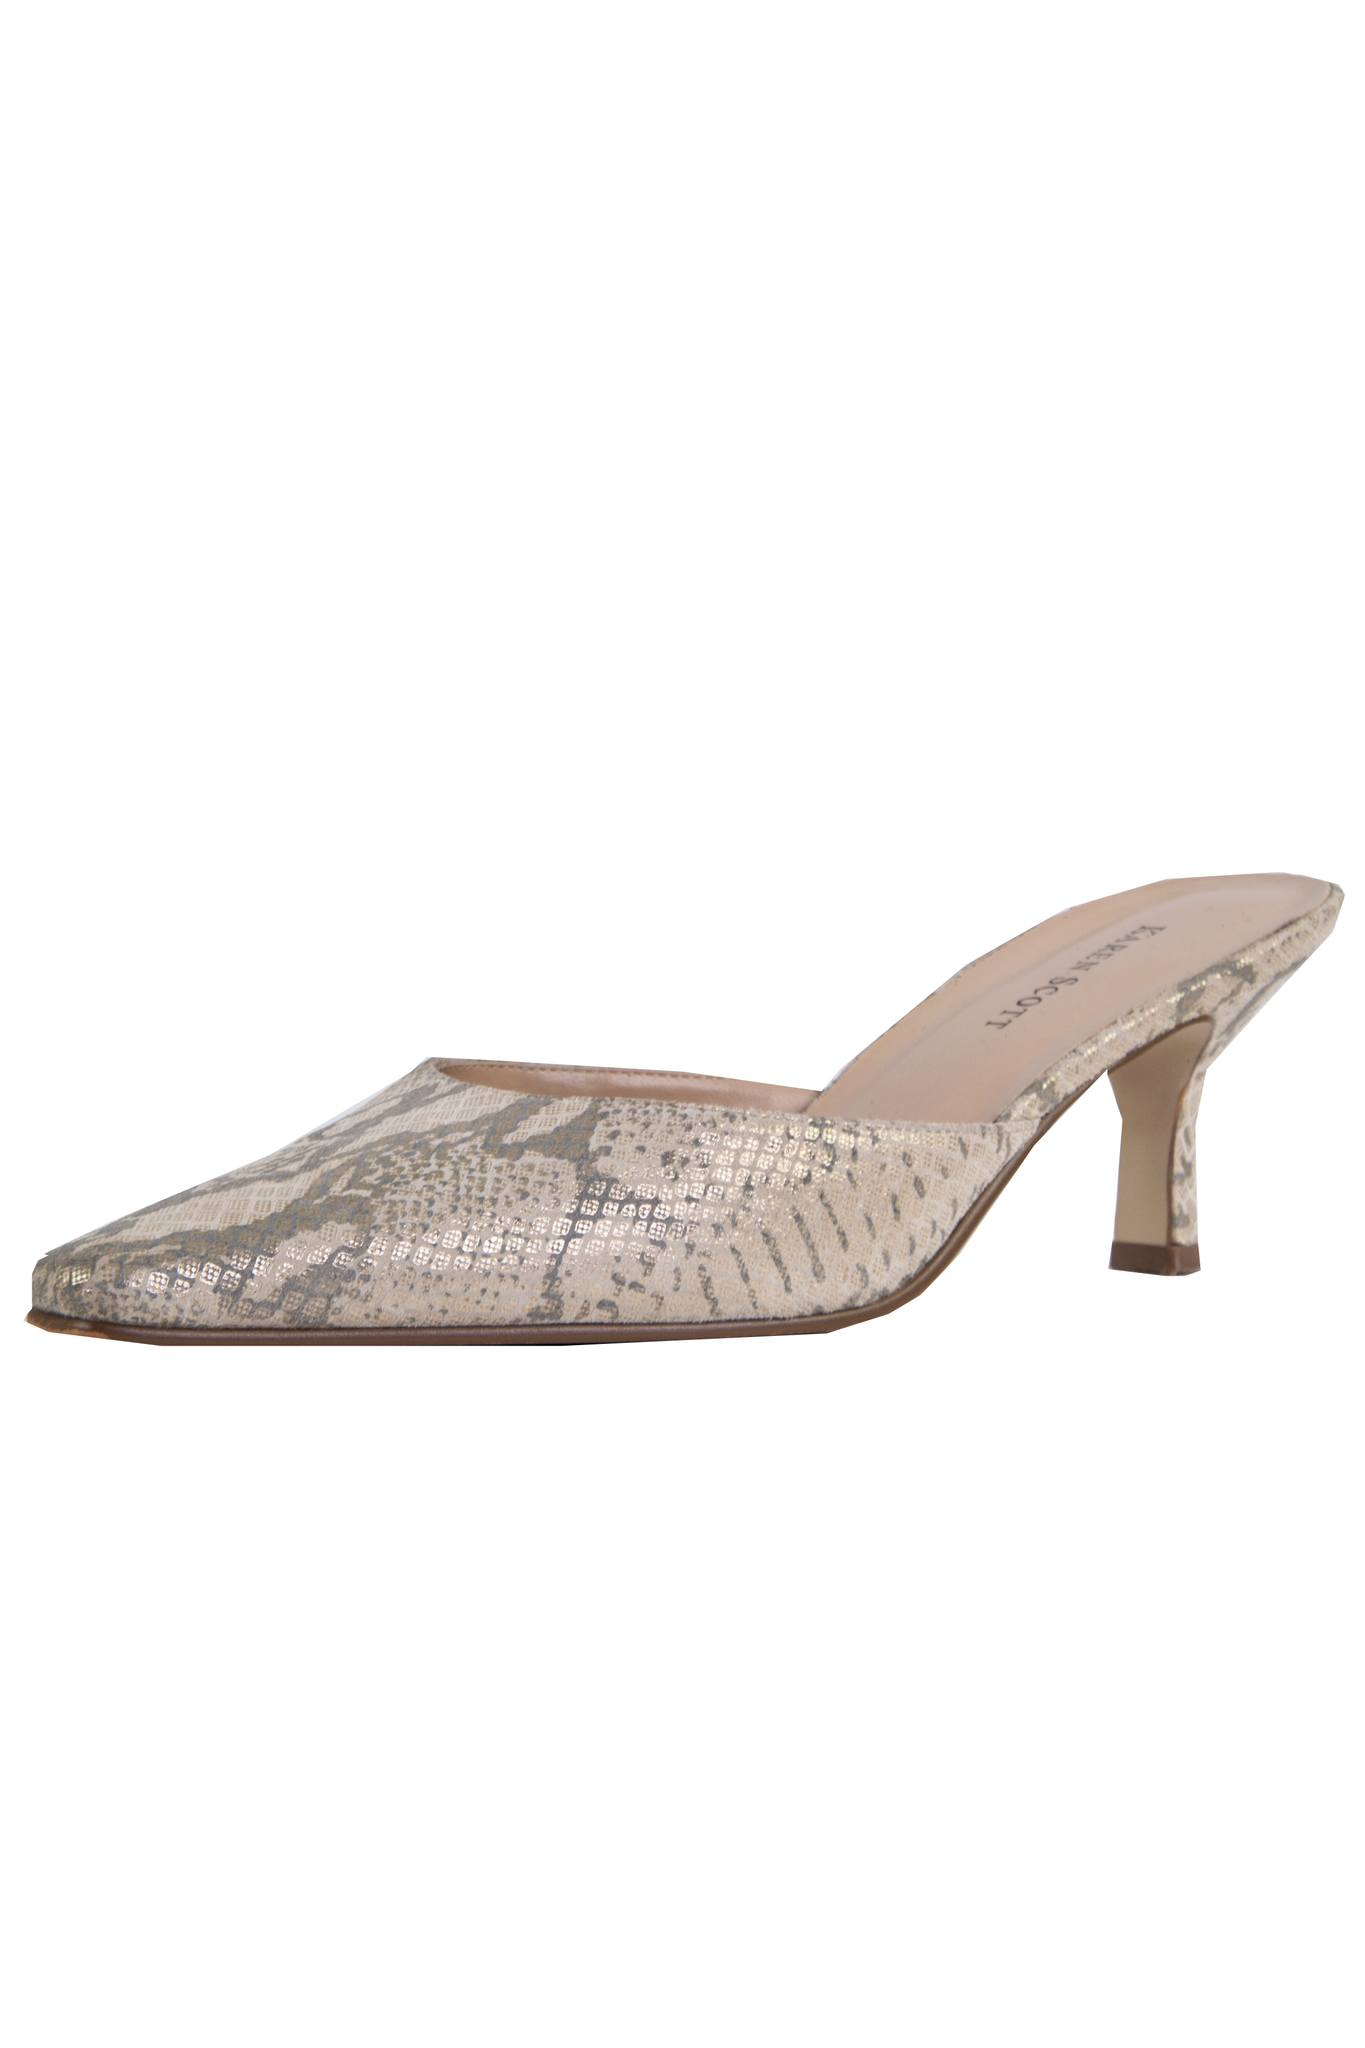 67d908abf metallic gold snakeskin print mules with kitten heel and pointed toe